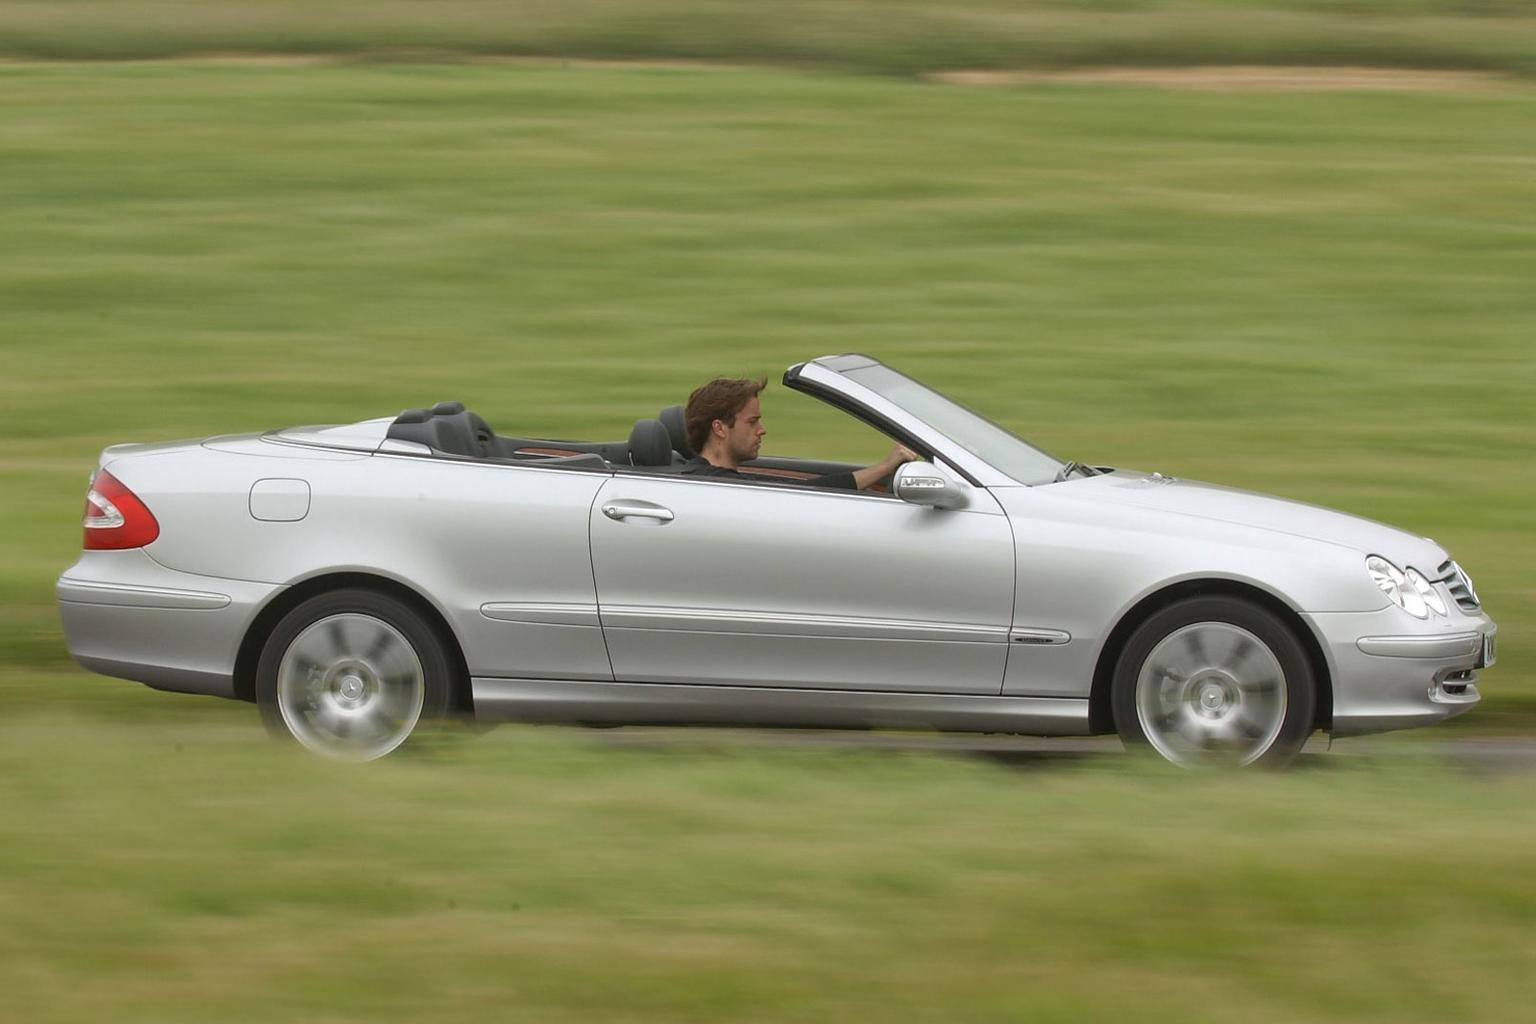 Mercedes-Benz CLK Cabriolet incurs extra inspection costs at end of lease